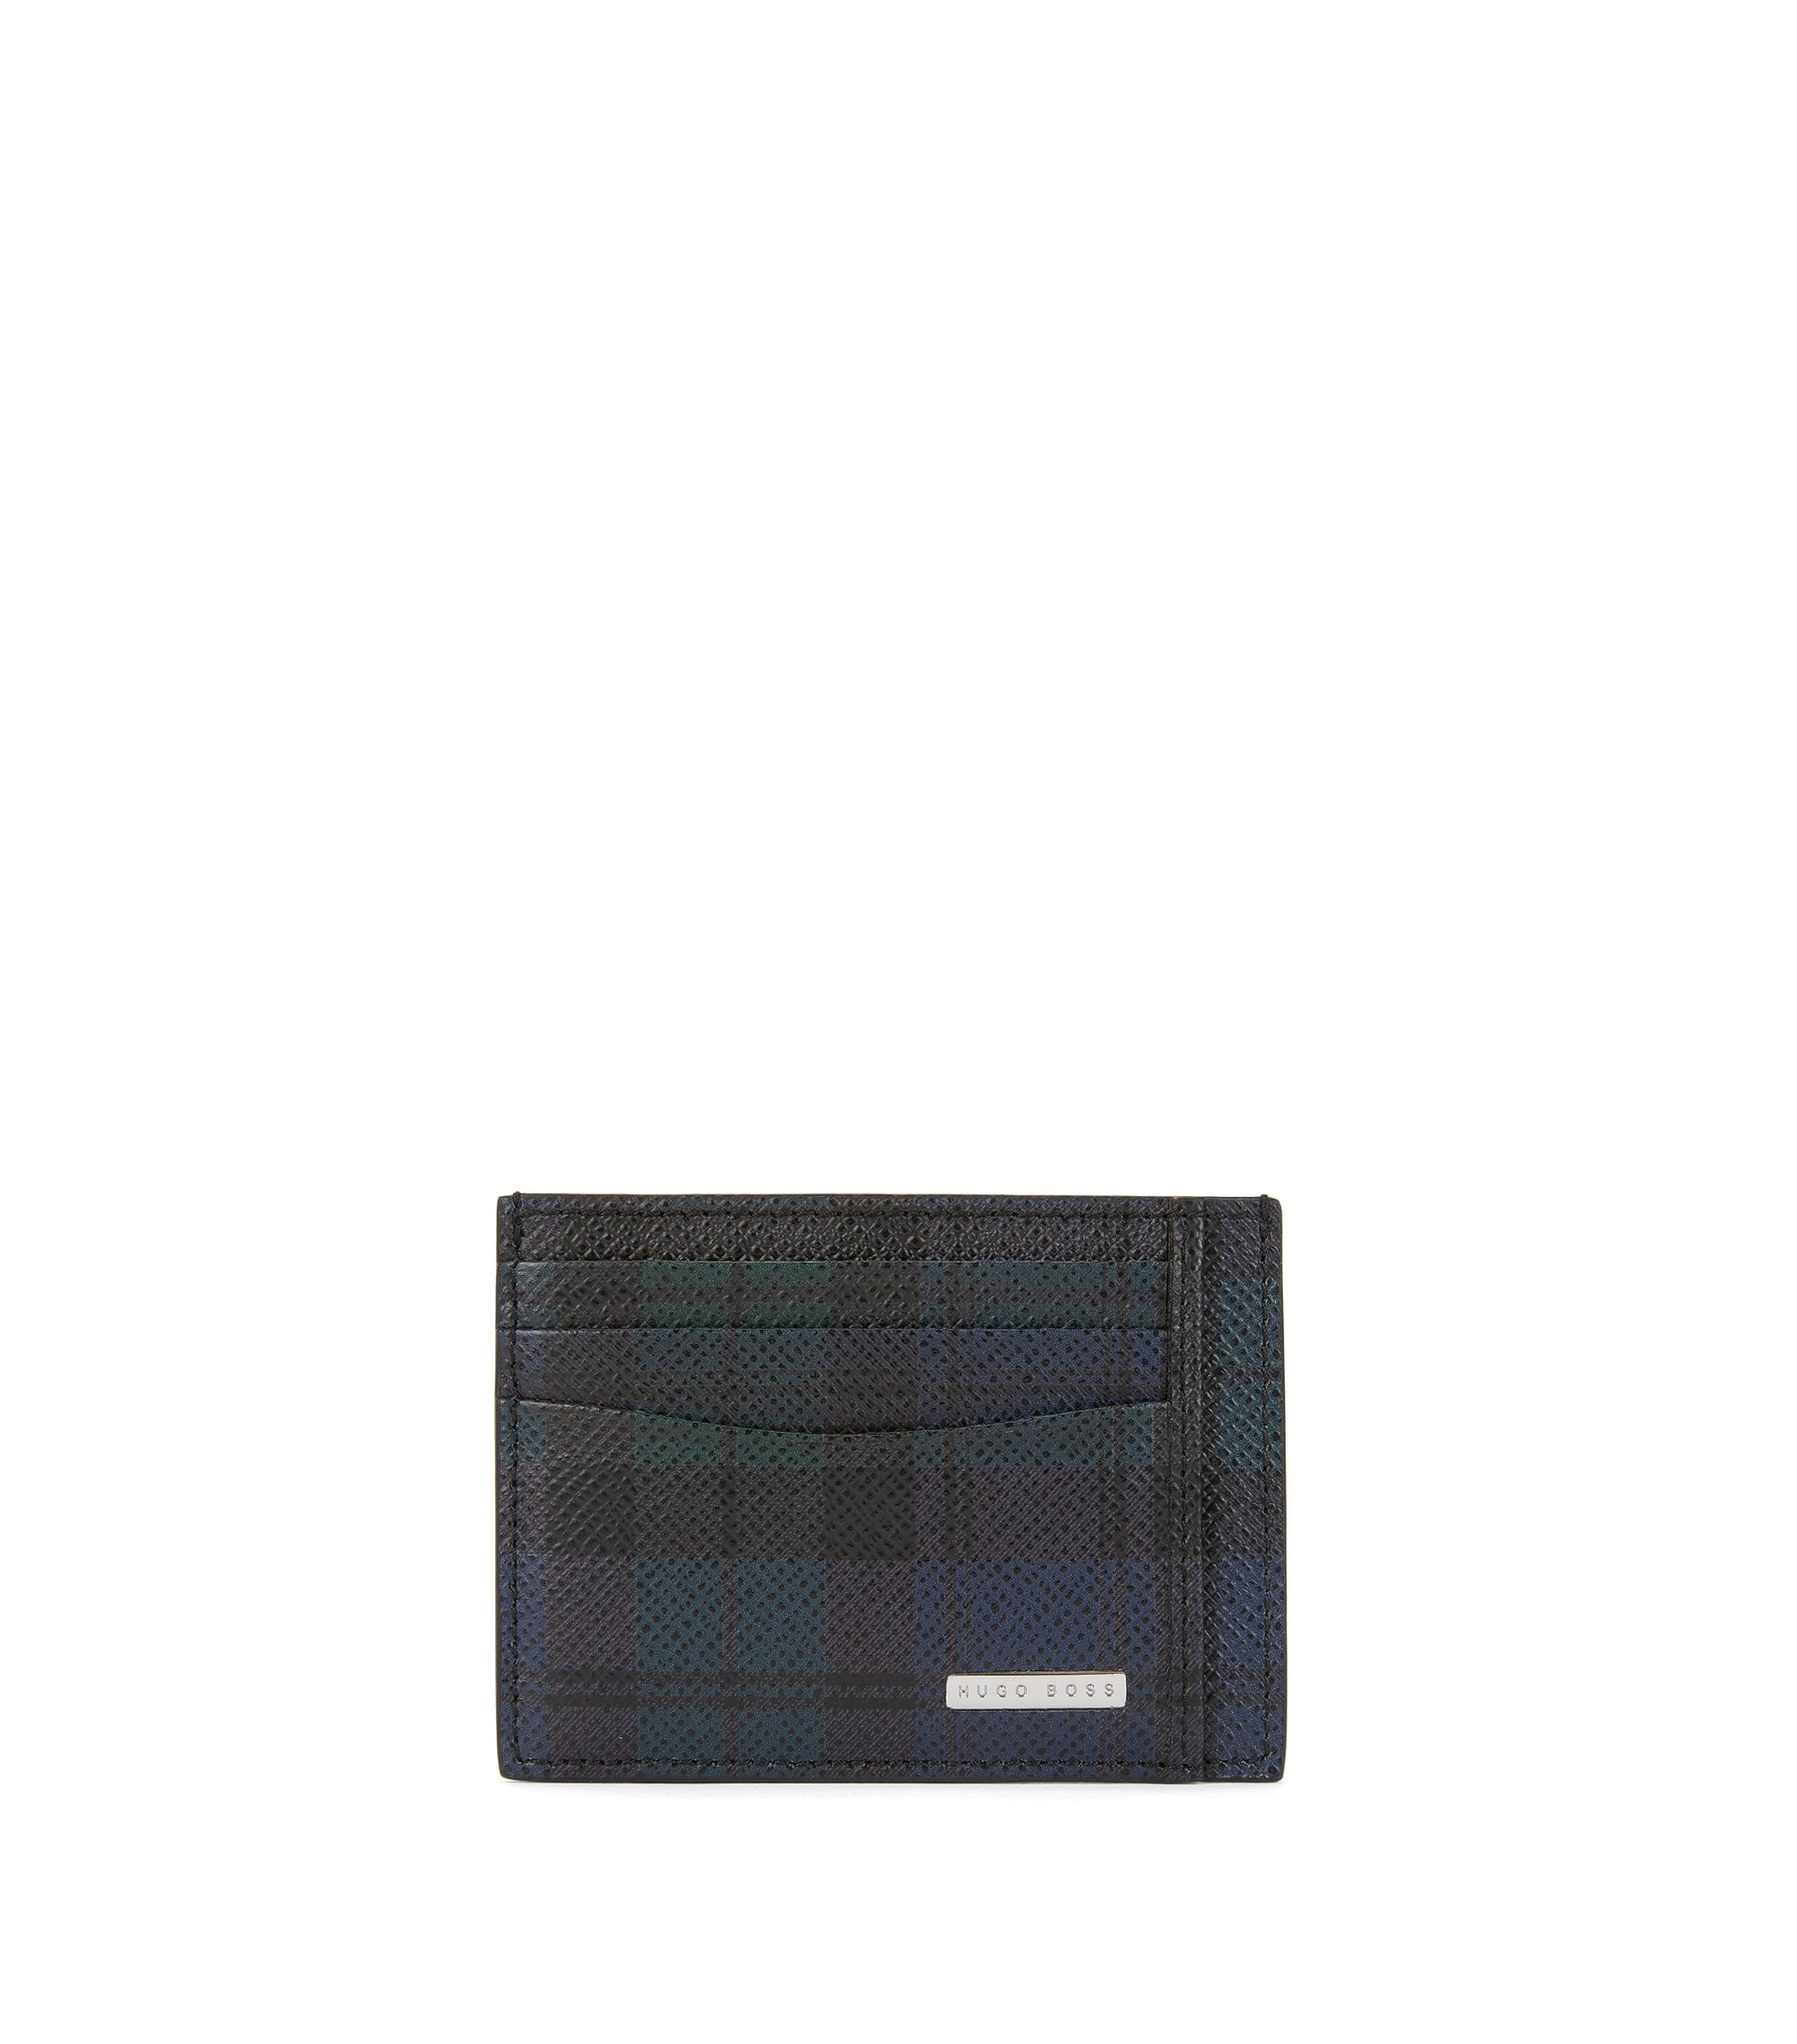 Signature Collection card holder in palmellato leather with blackwatch print, Patterned